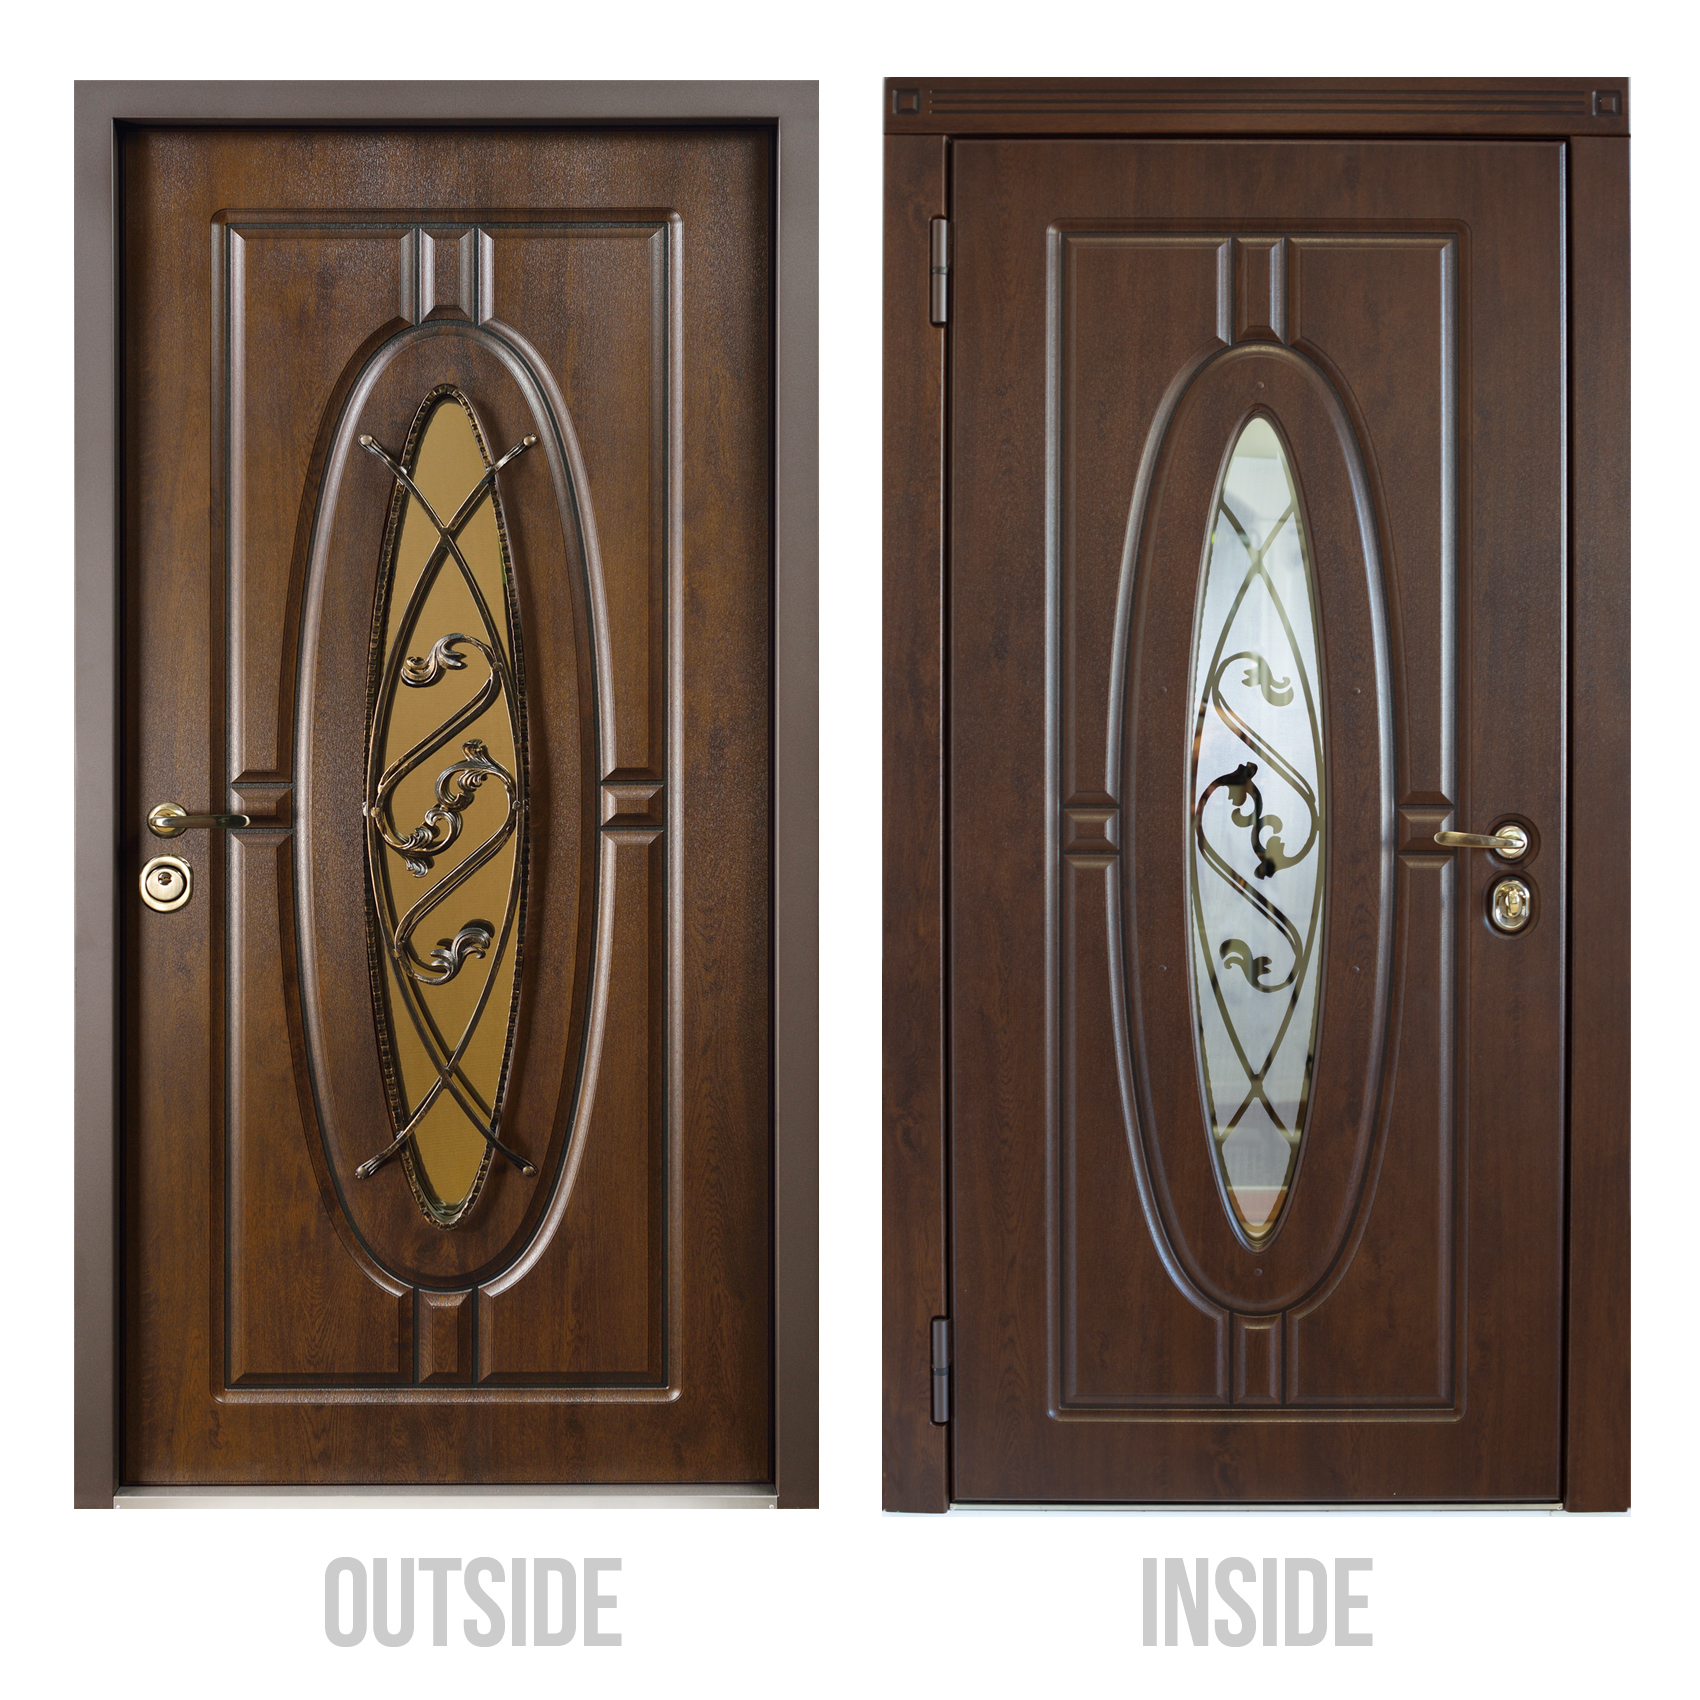 Buy Monarch Front Door At A Bargain Price From Novo Porte At